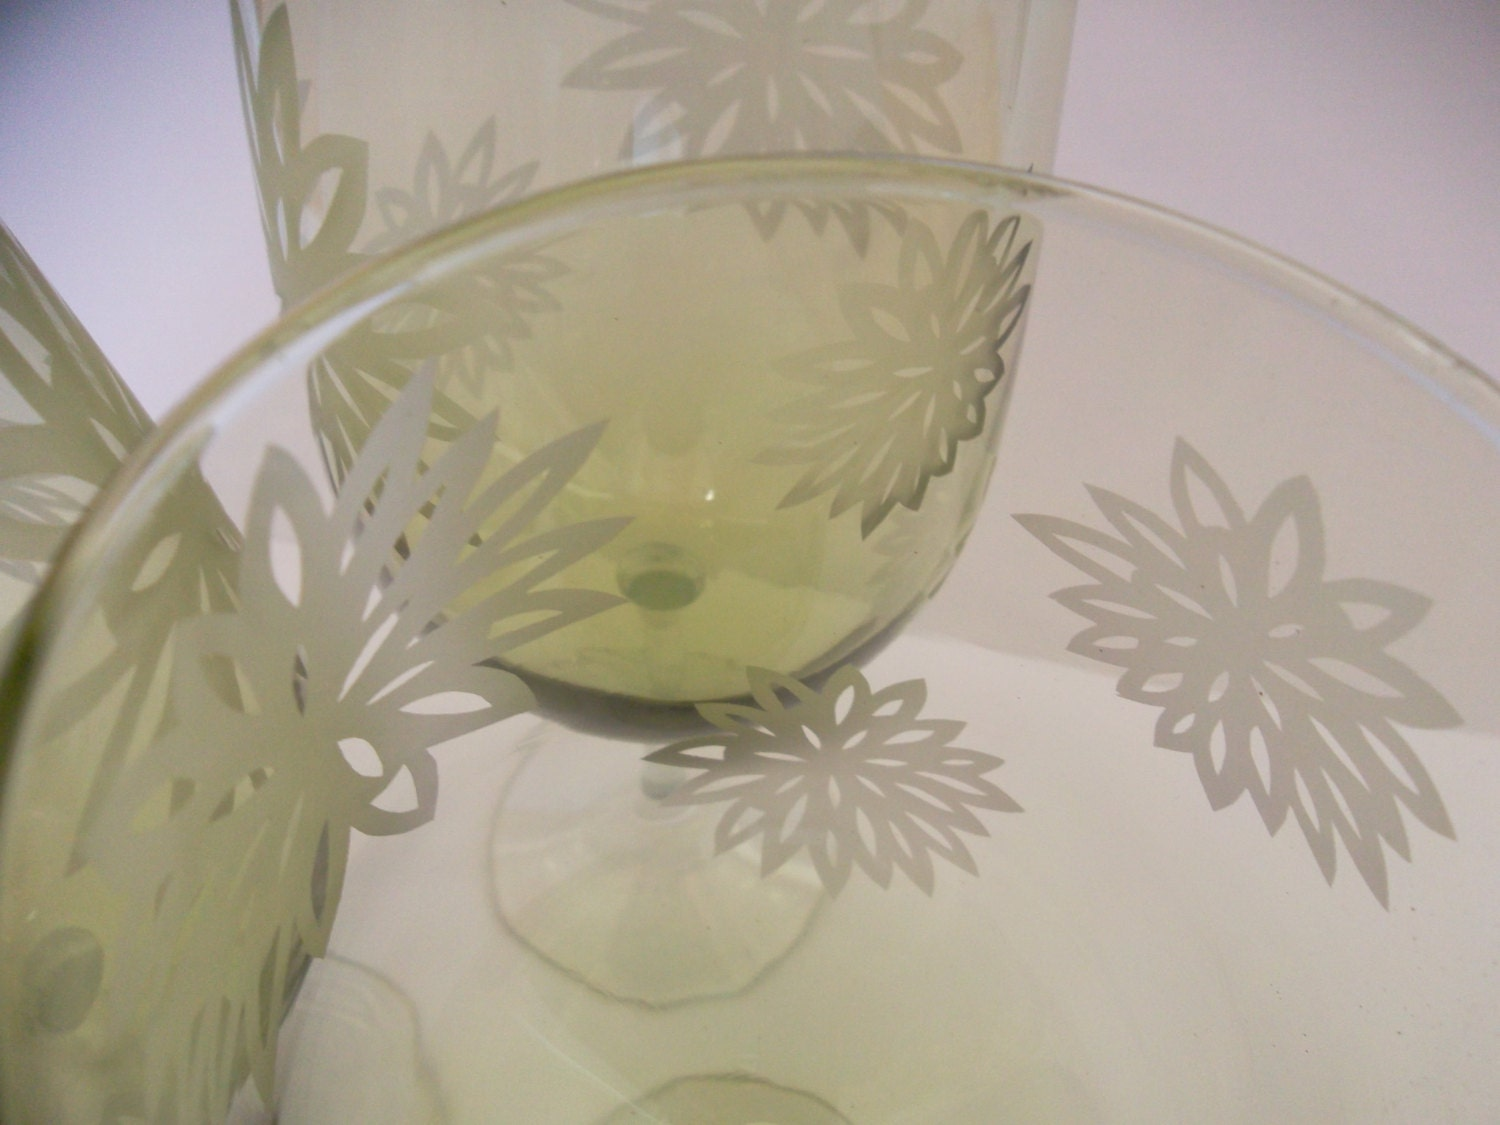 Etched Wine Glasses Wedding Gifts : Wine glasses etched with flowers. Set of 2. Wedding gift